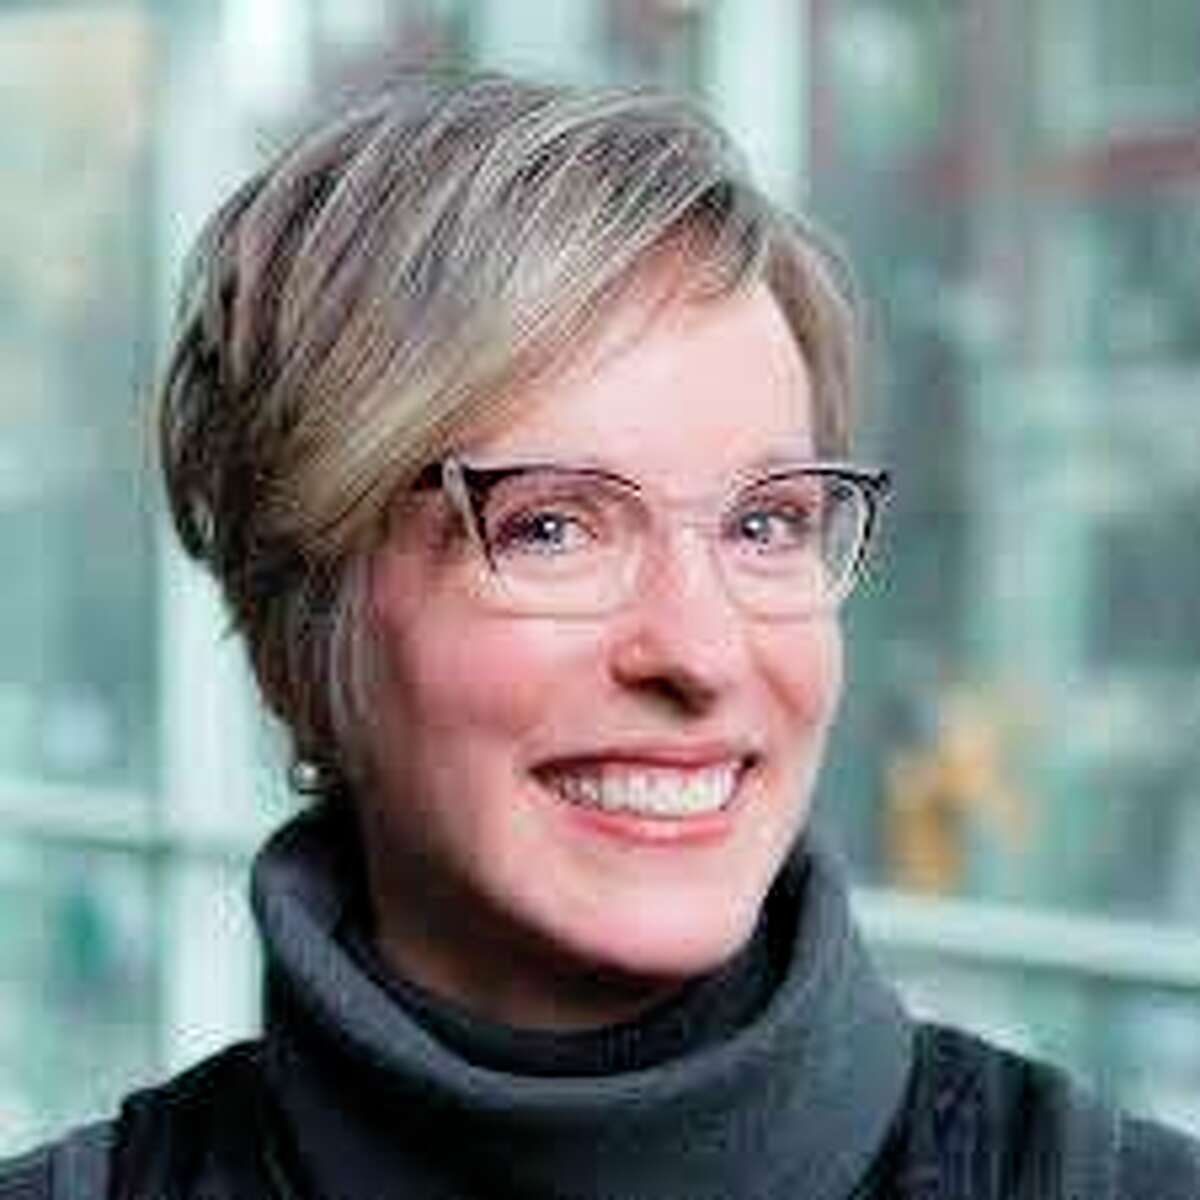 TheTuesday Talks, Tunes, and Toursseries will open on July 6 with Tara McCrackin, president of Kendall College of Art and Design of Ferris State University. Her topic is titled Innovation in Bloom: How Design is Helping Local Business. (Courtesy photo)